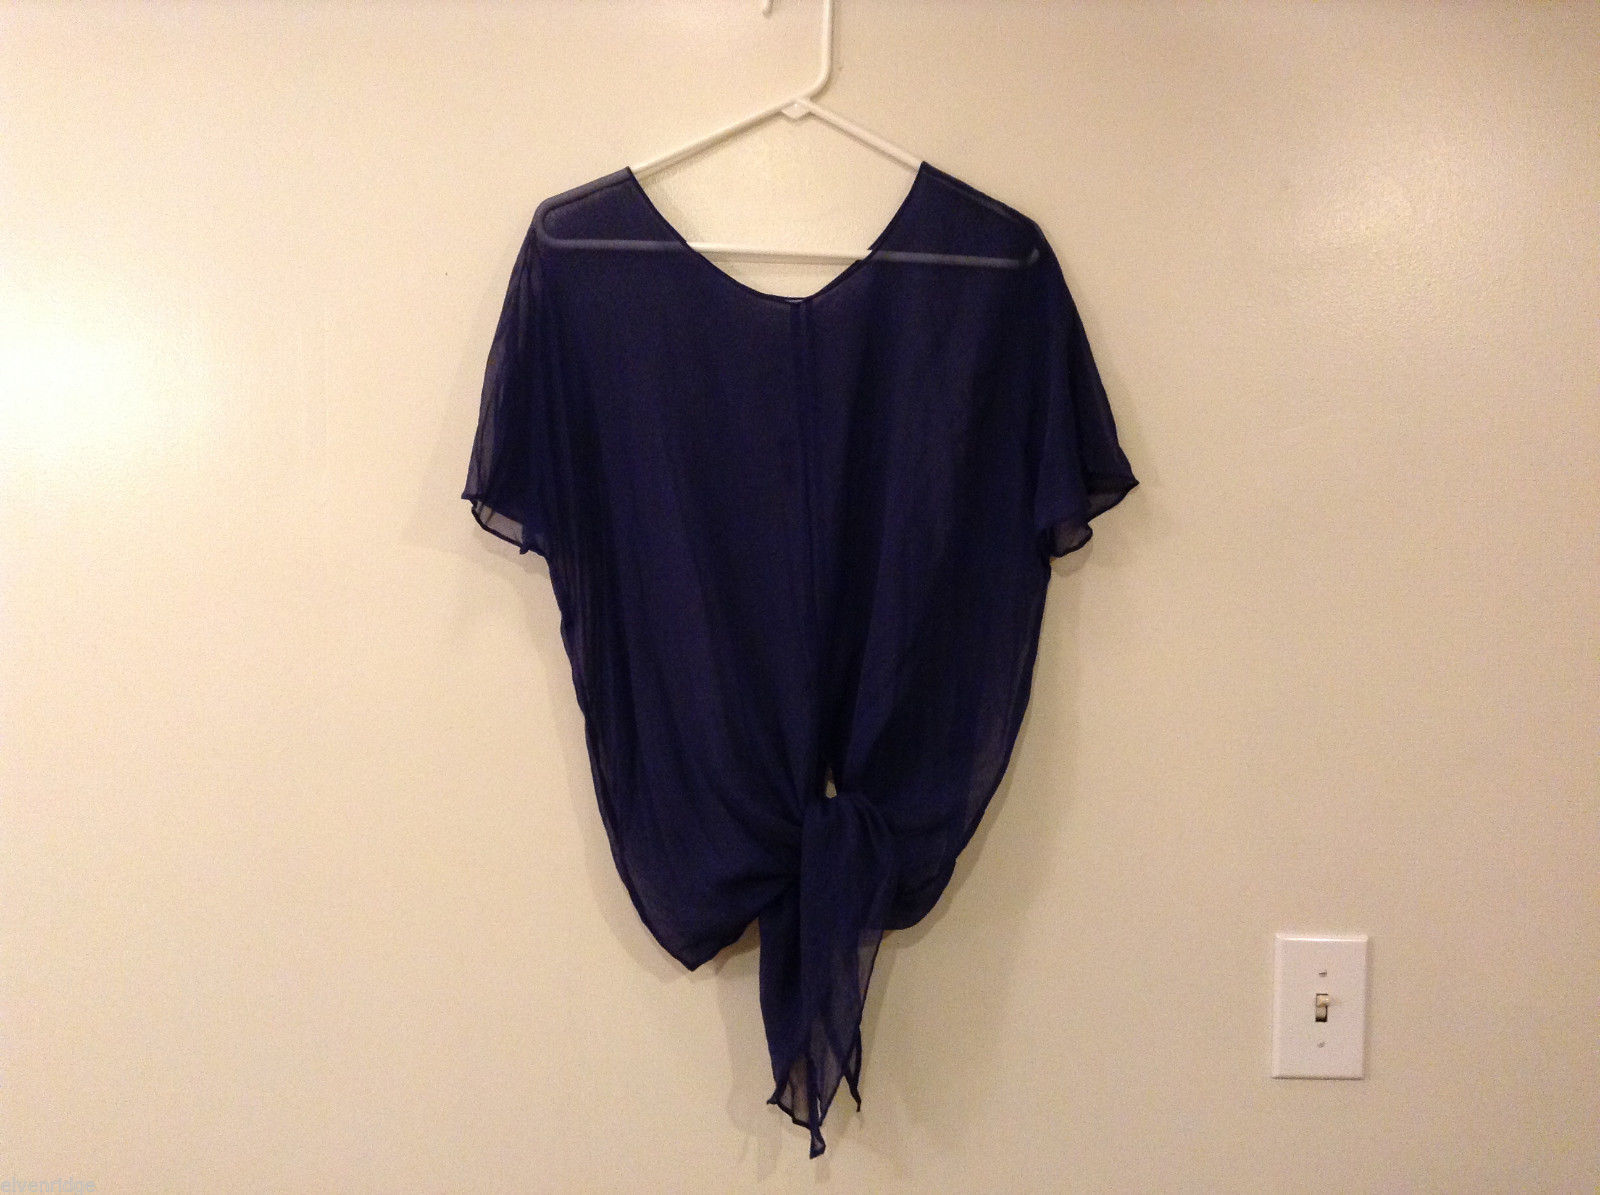 Ladies Handmade (no brand name) Dark Blue Sheer Cover Up Blouse, Size XL NO tag